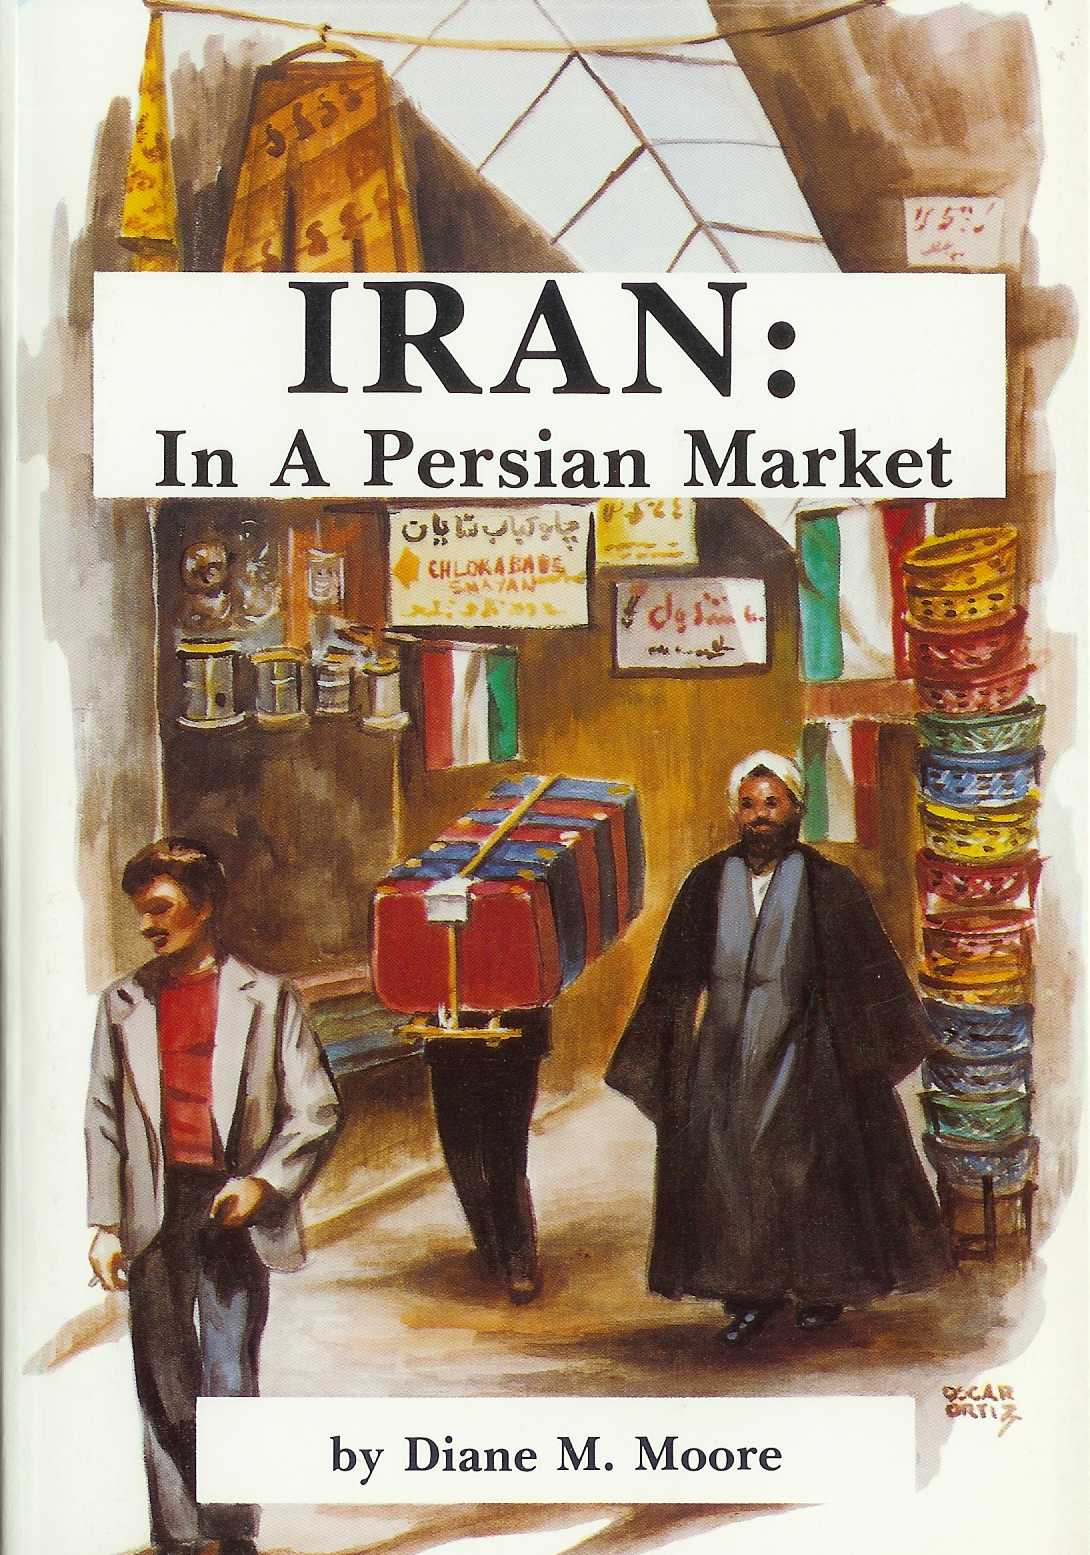 For several years after my N A Persian Market